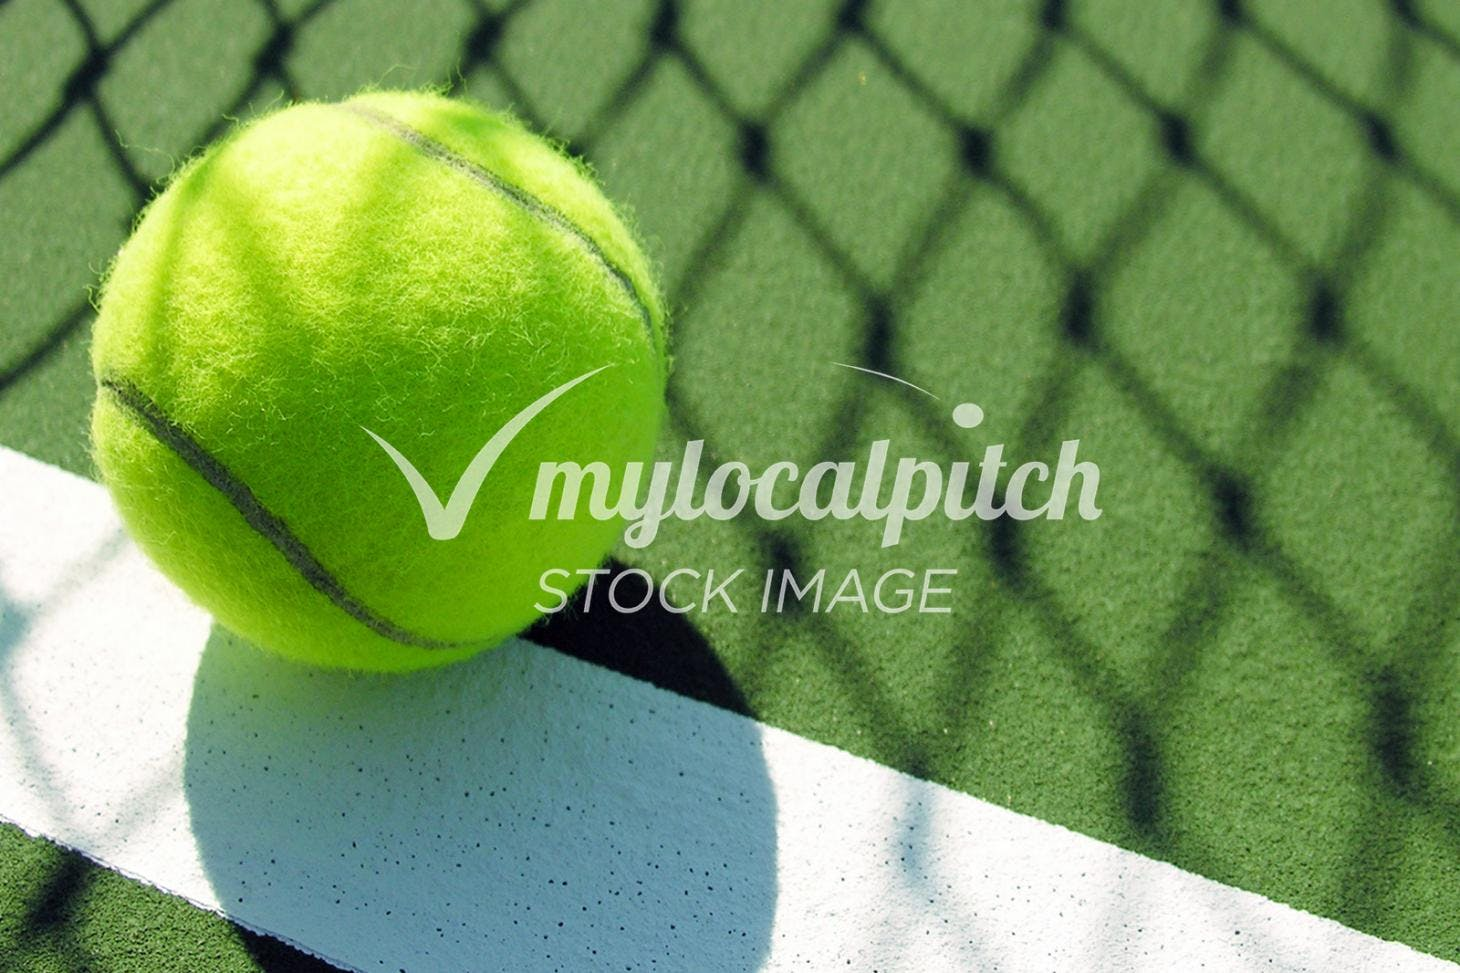 Dulwich Lawn Tennis Club Outdoor | Grass tennis court